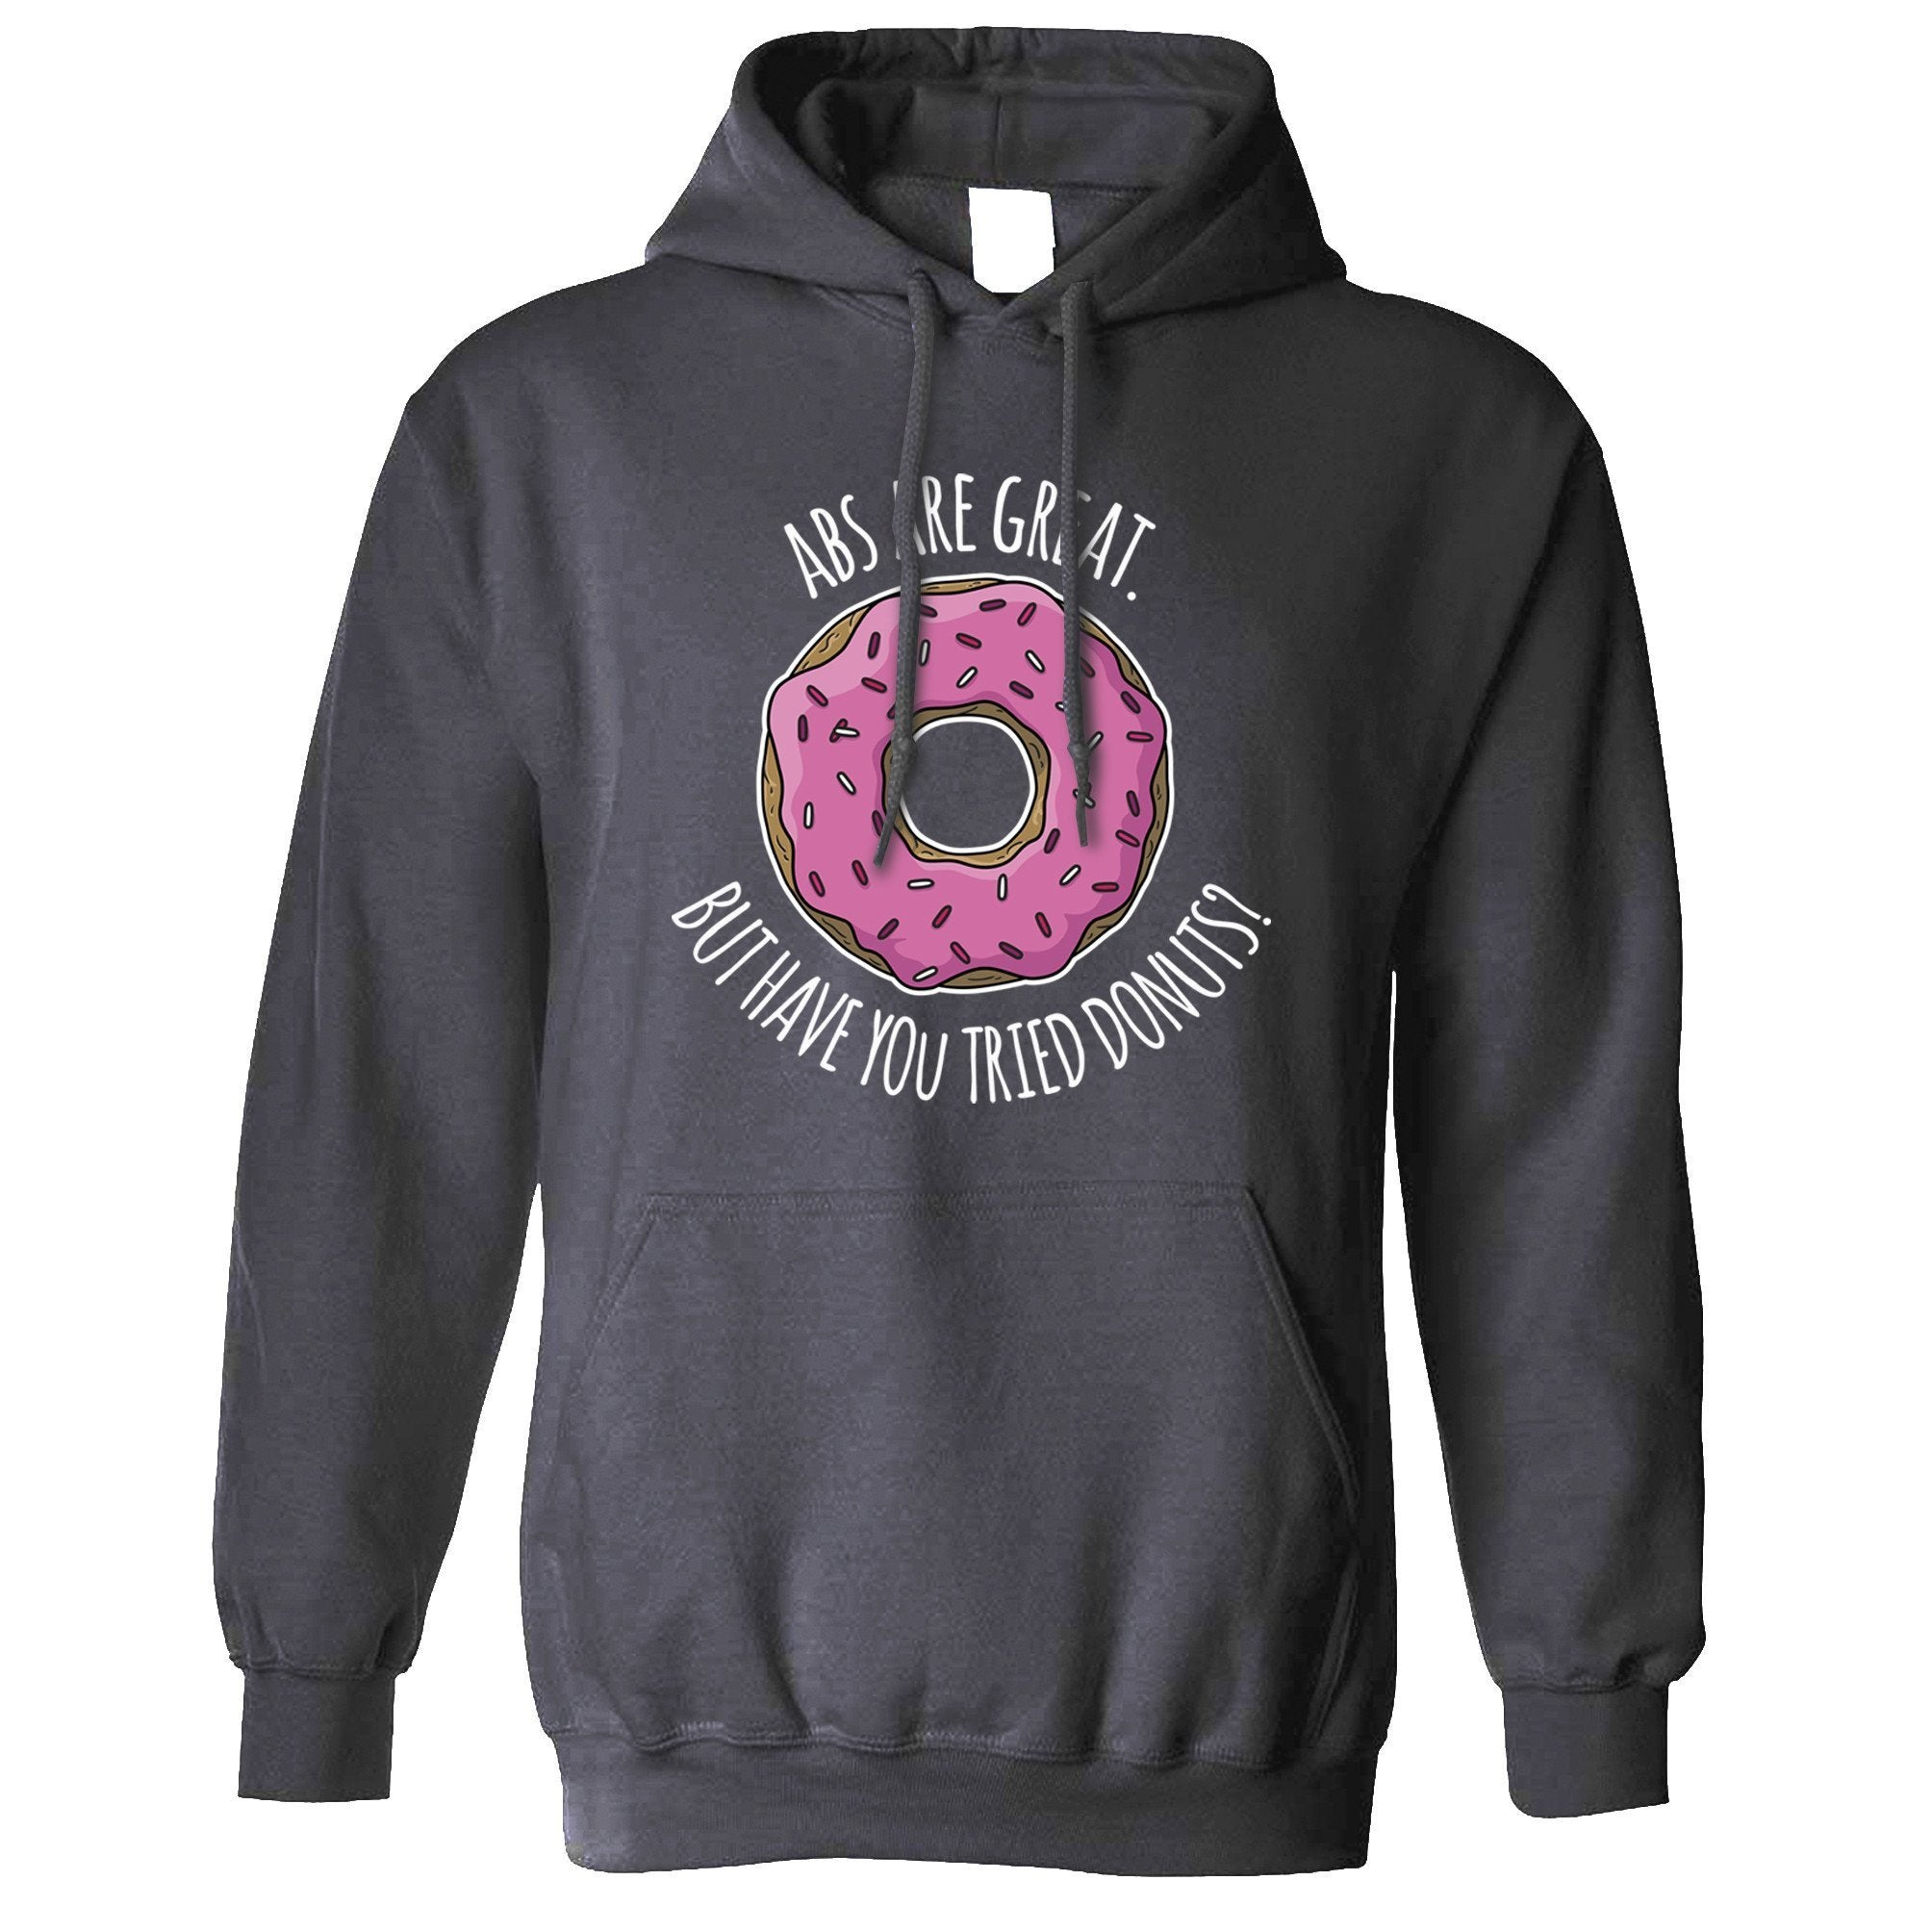 Joke Hoodie Abs Are Great But Have You Tried Donuts? Hooded Jumper